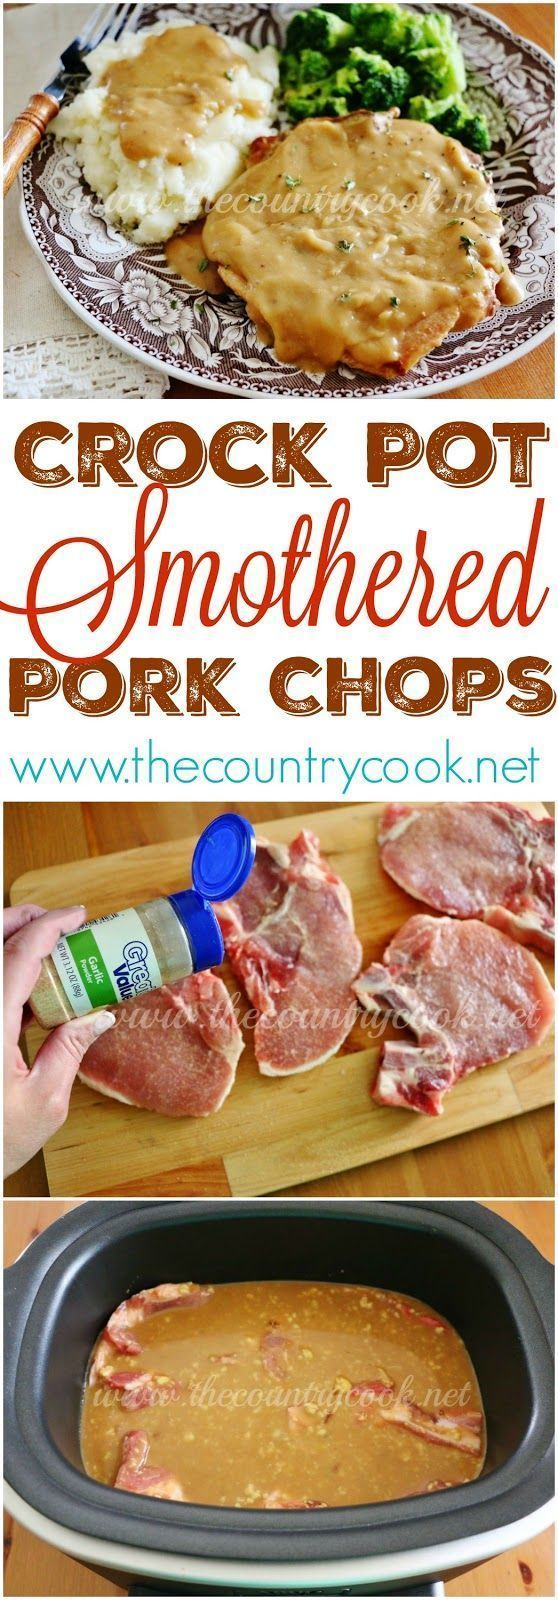 Things that look good to eat: Crock Pot Smothered Pork Chops - The Country Cook